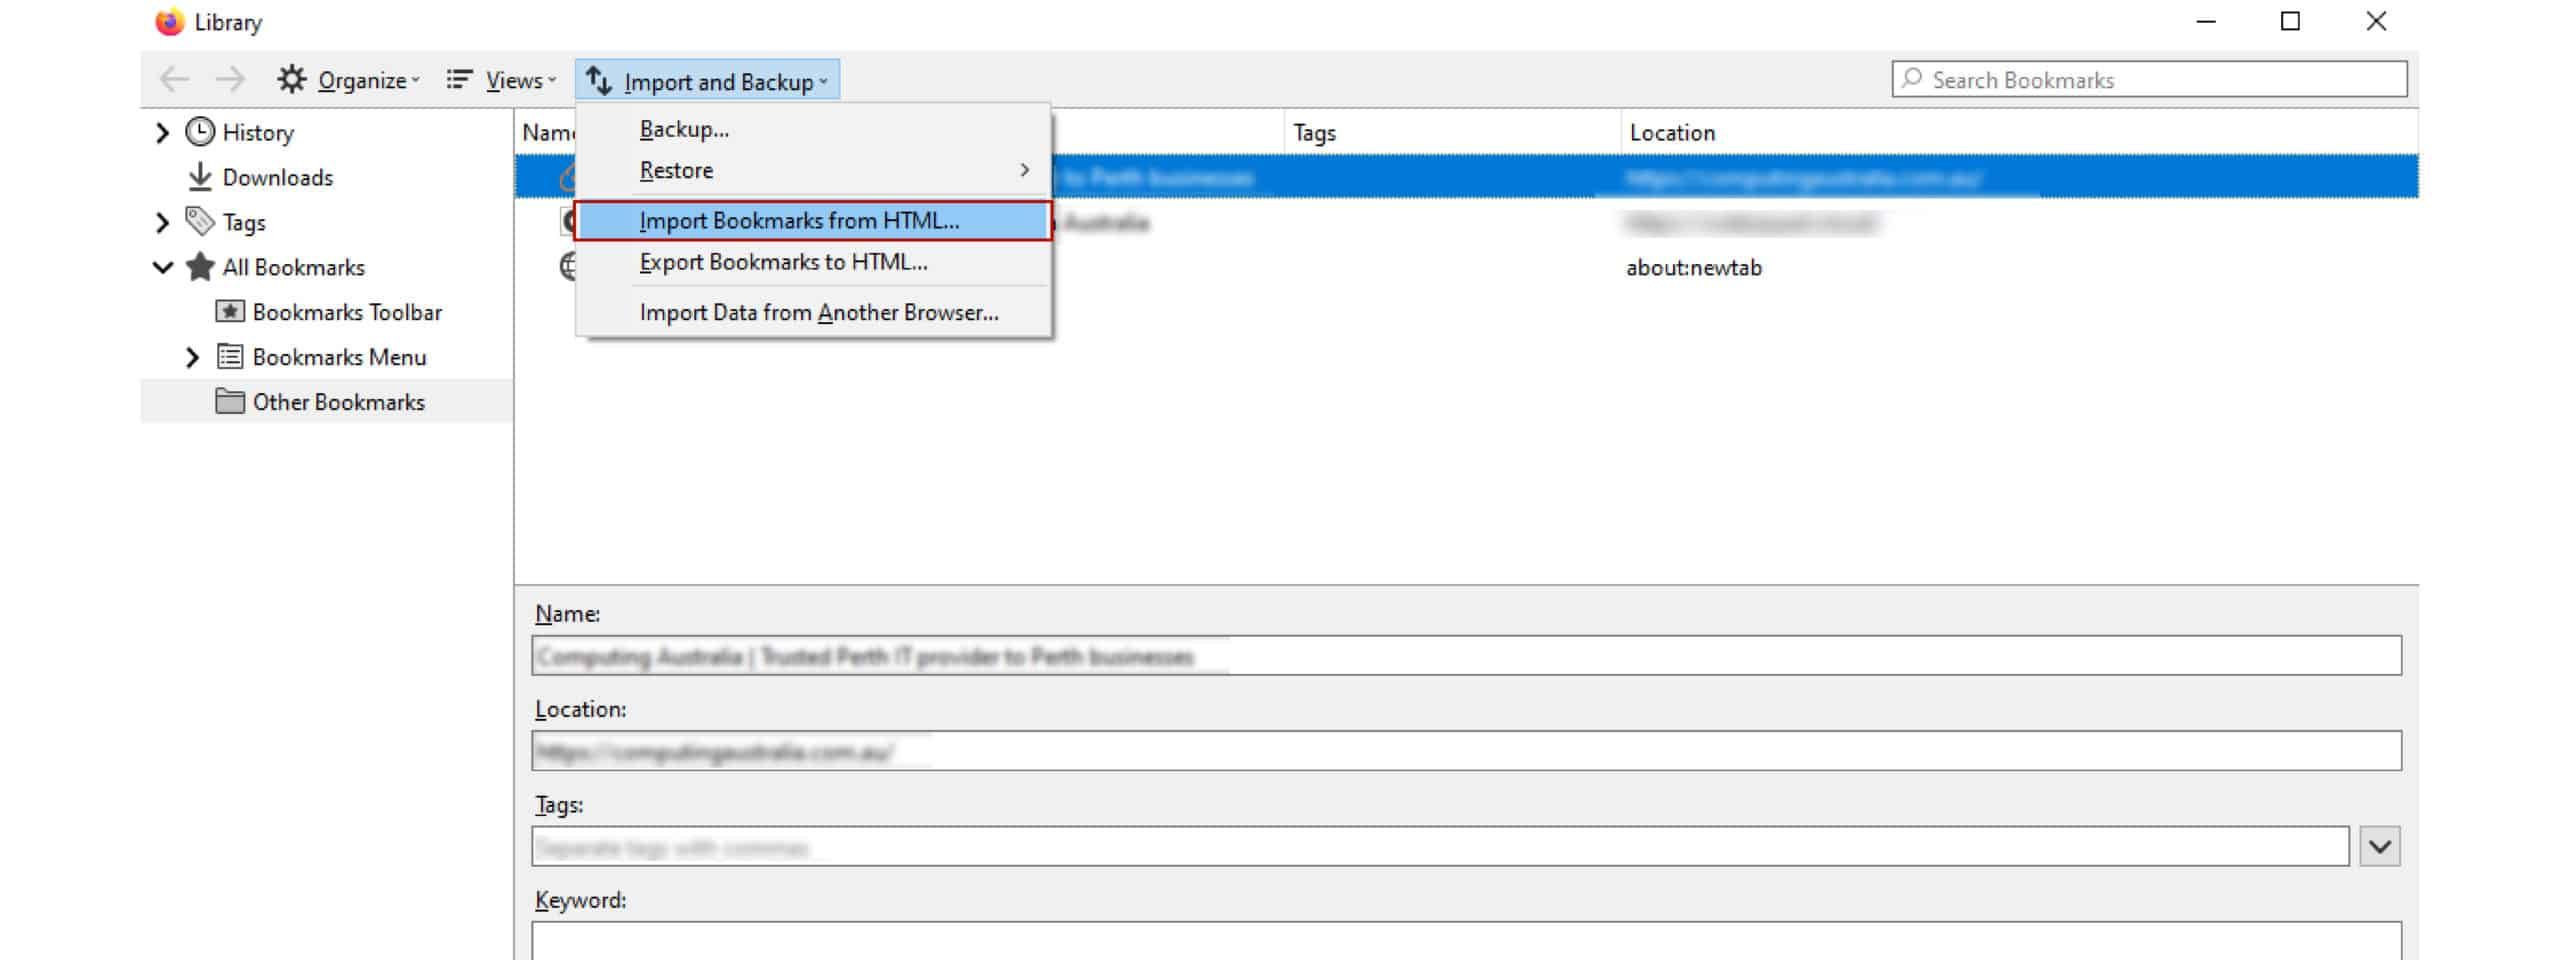 How to Back up and Migrate Your Bookmarks   5 Minute HelpDesk